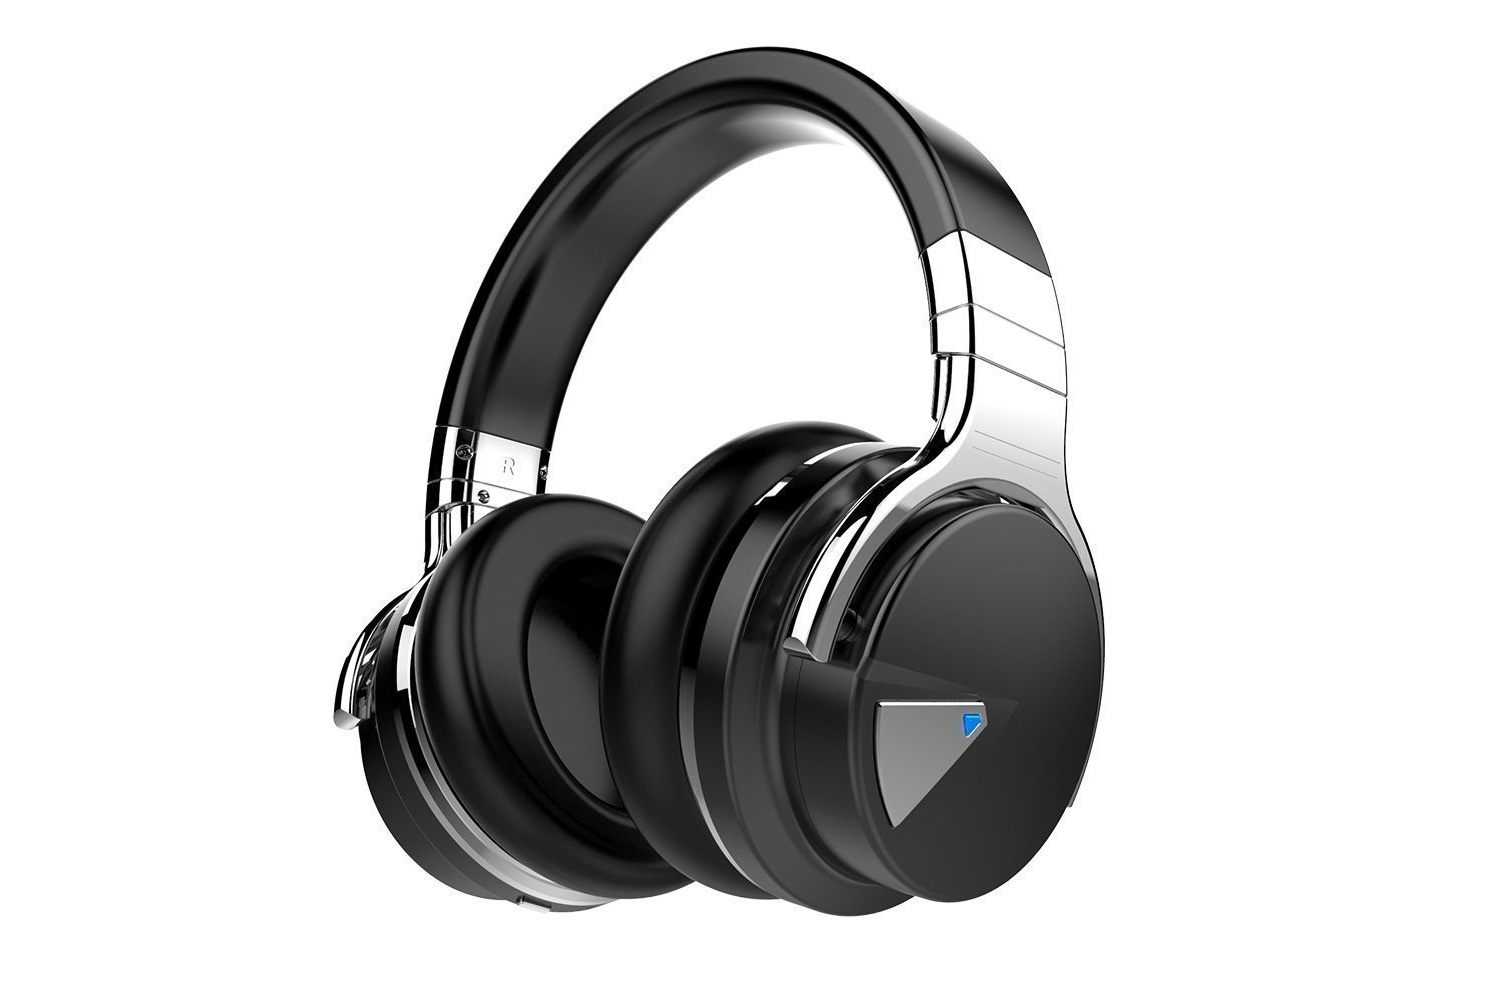 COWIN Wireless Headphones for Amazon Prime Father's Day